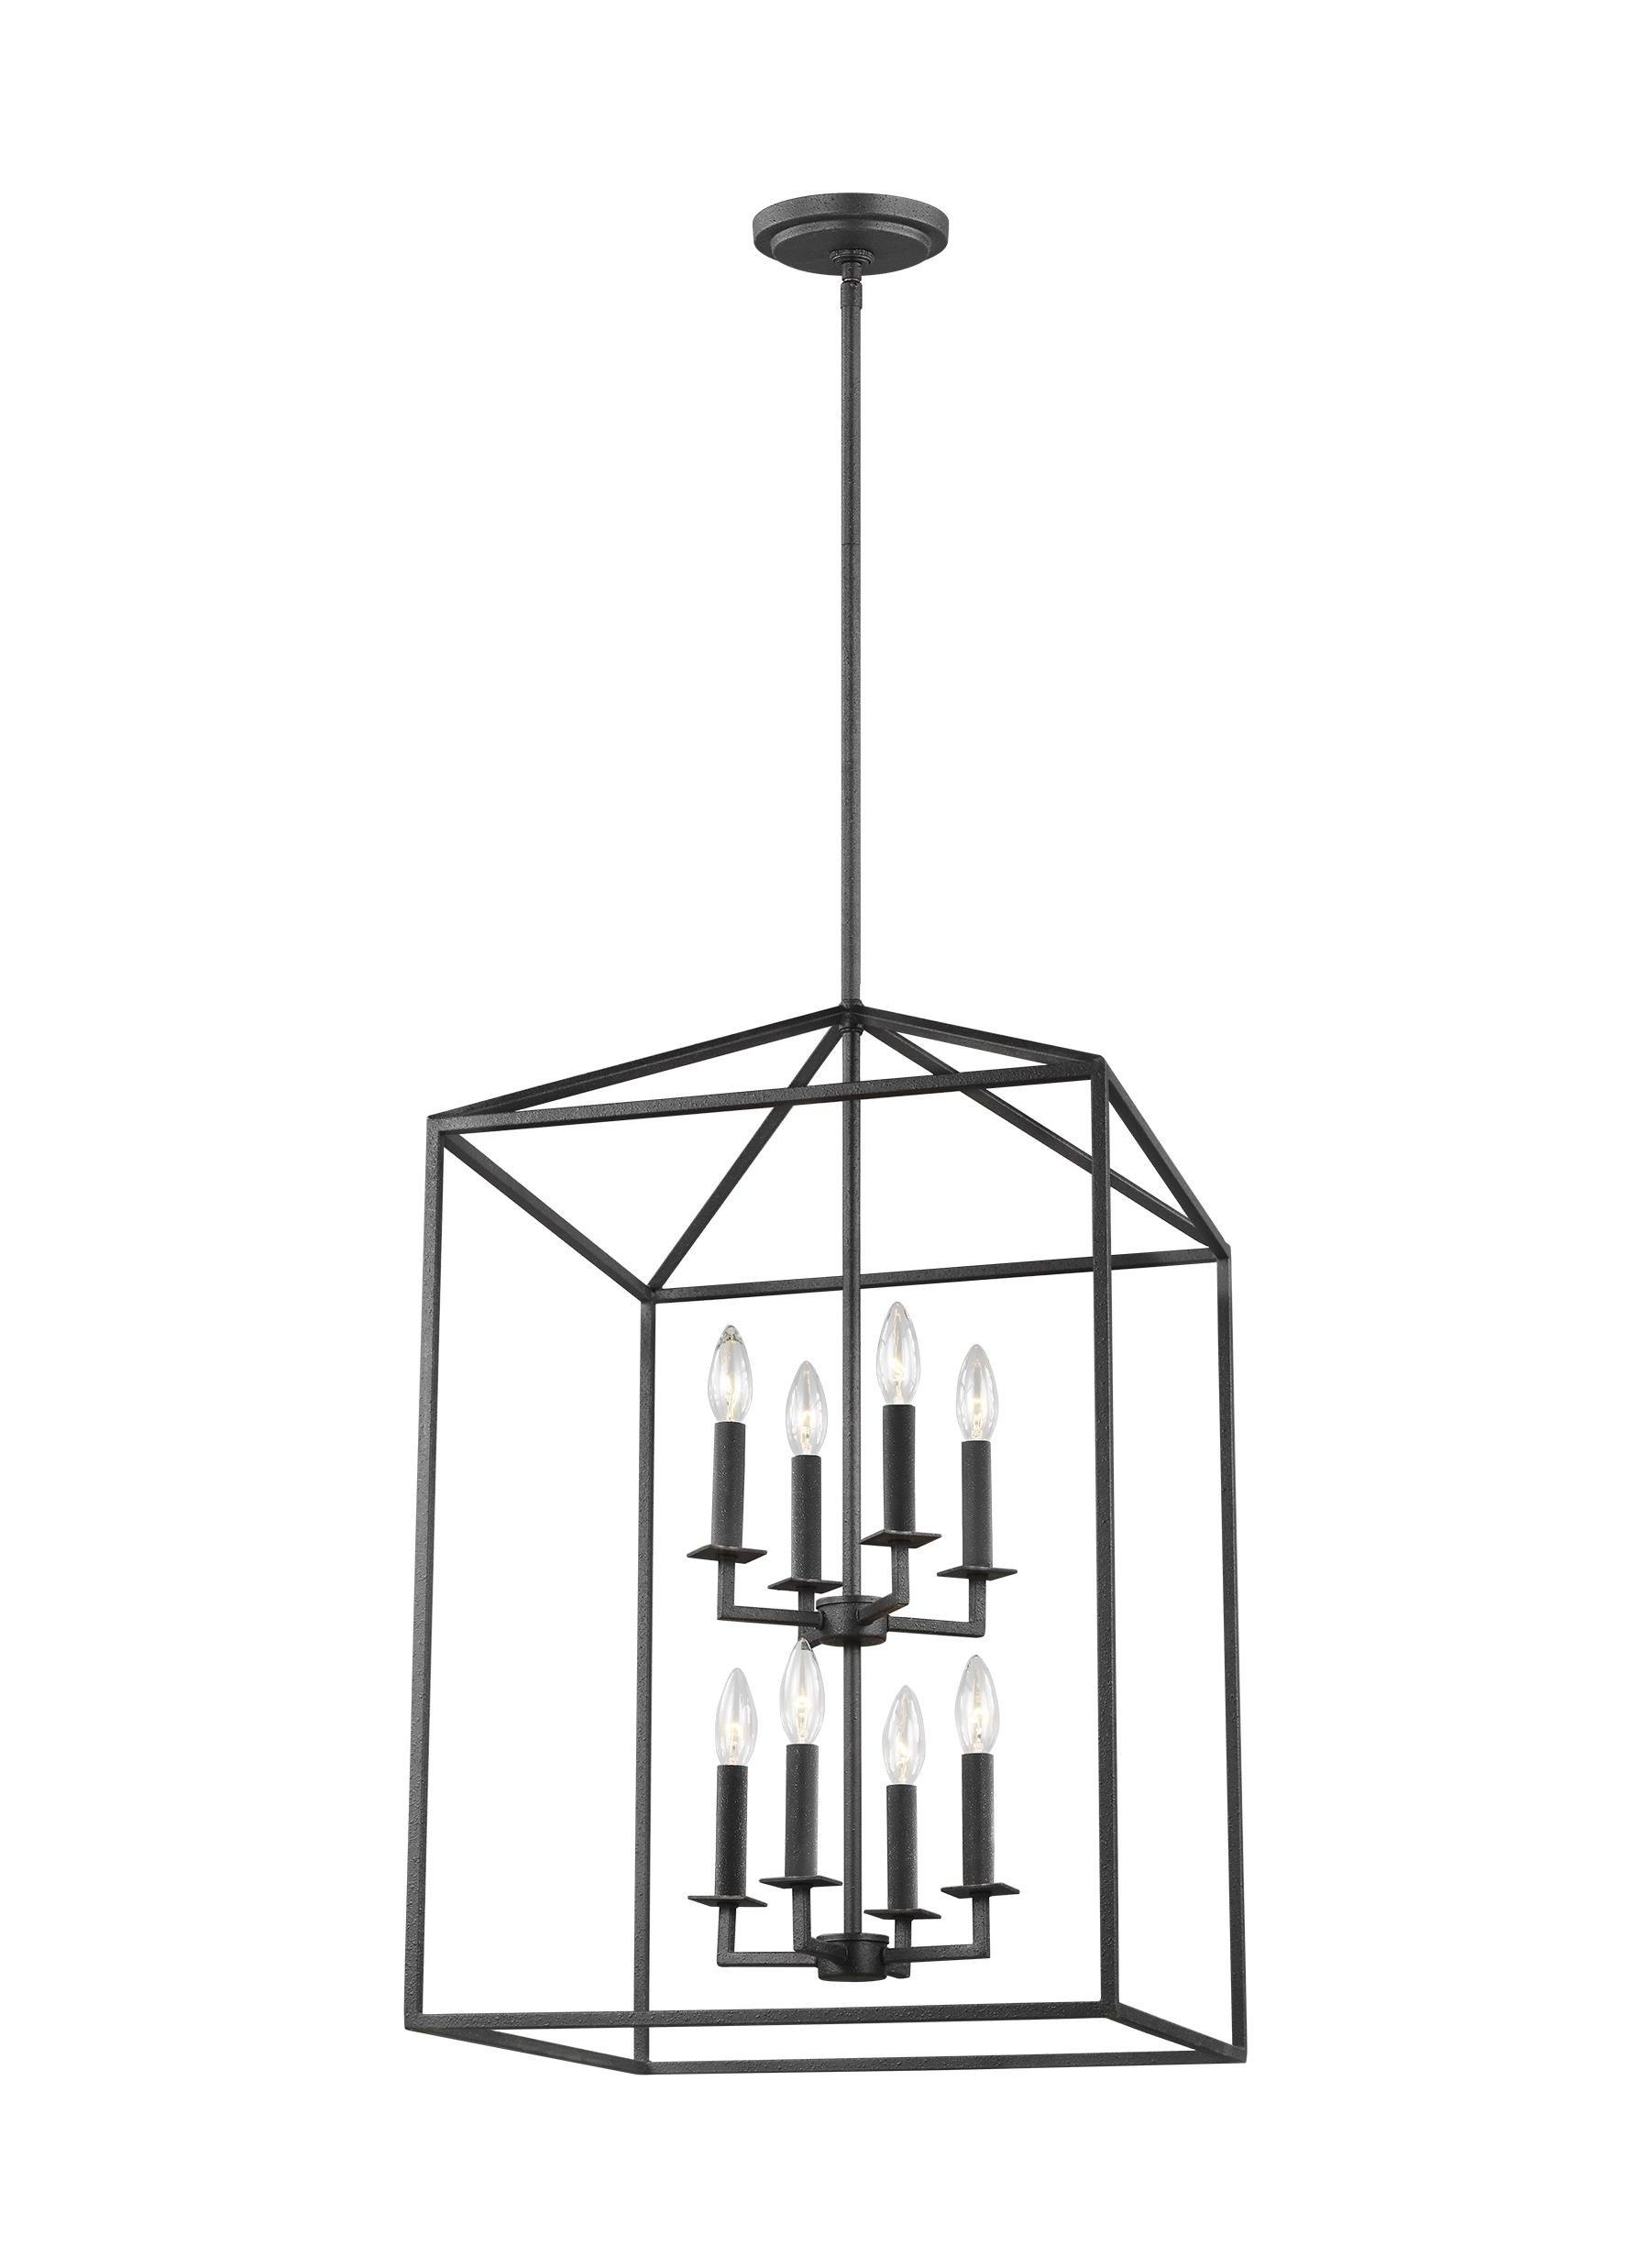 Widely Used Odie 8 Light Lantern Tiered Pendant Regarding Carmen 8 Light Lantern Tiered Pendants (View 2 of 25)